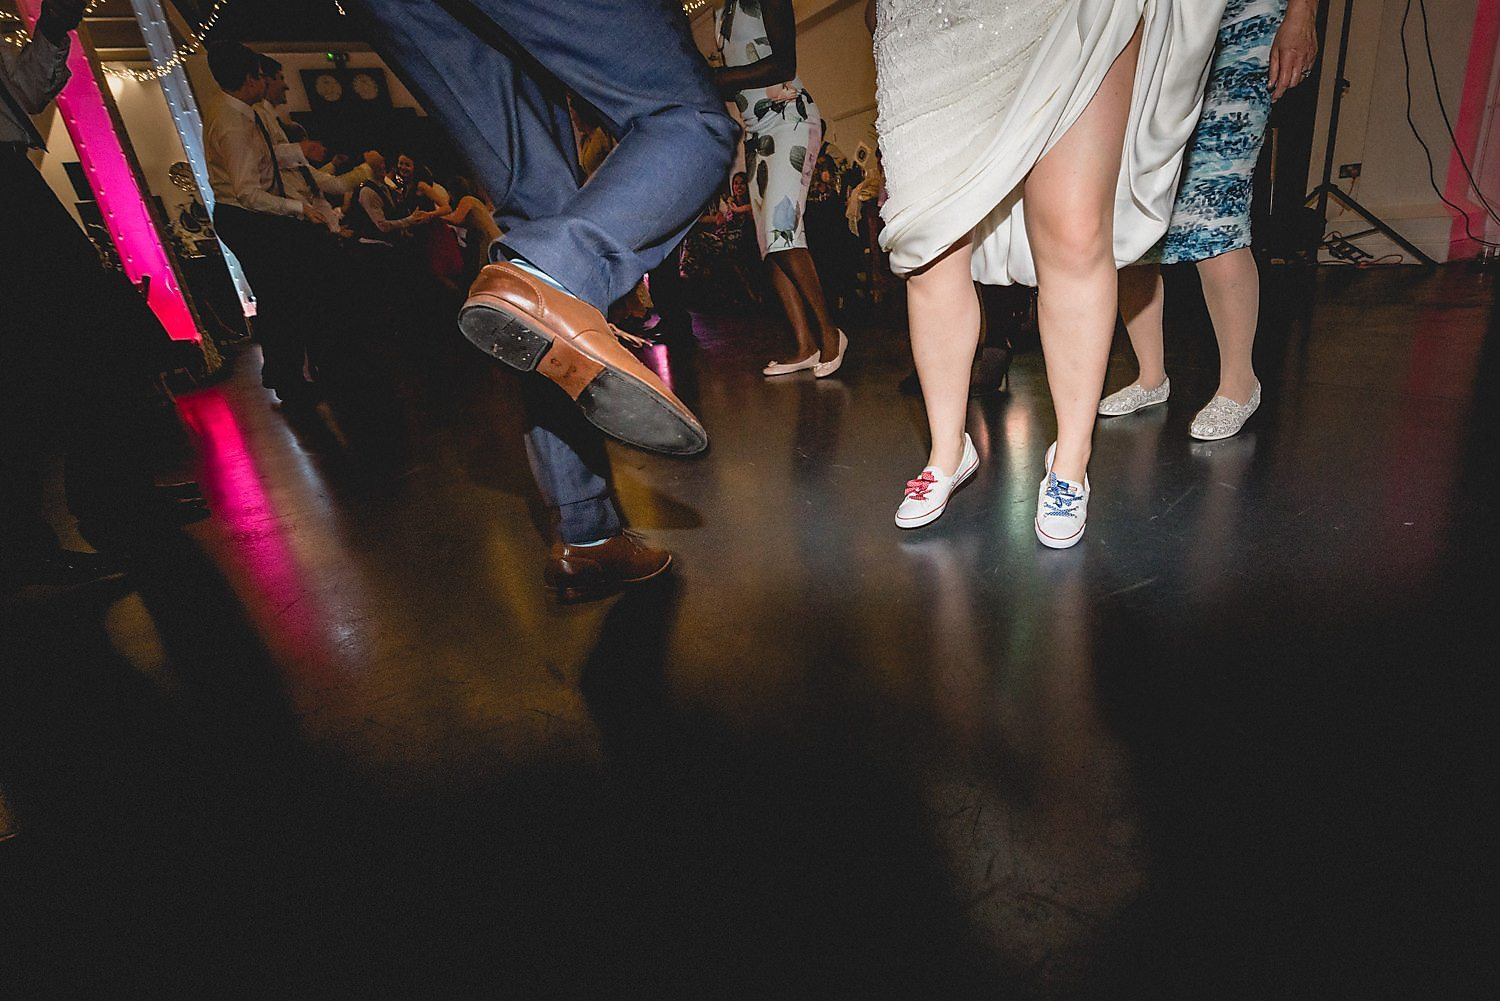 The bride and groom's feet, mid jumping and leaping during the Ceilidh